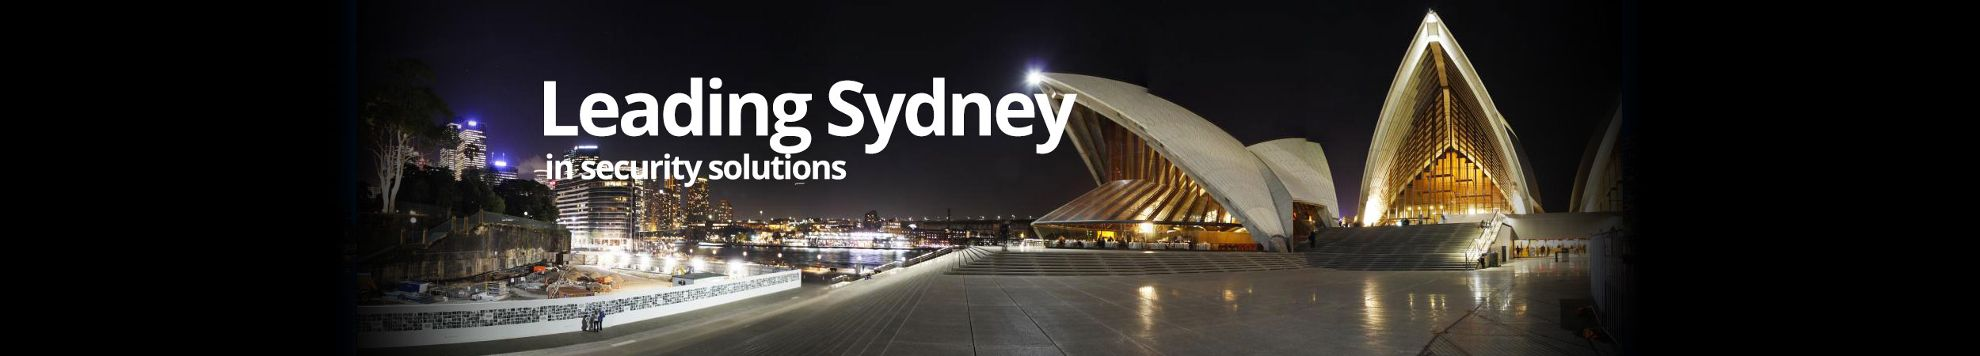 Leading Sydney in commercial security